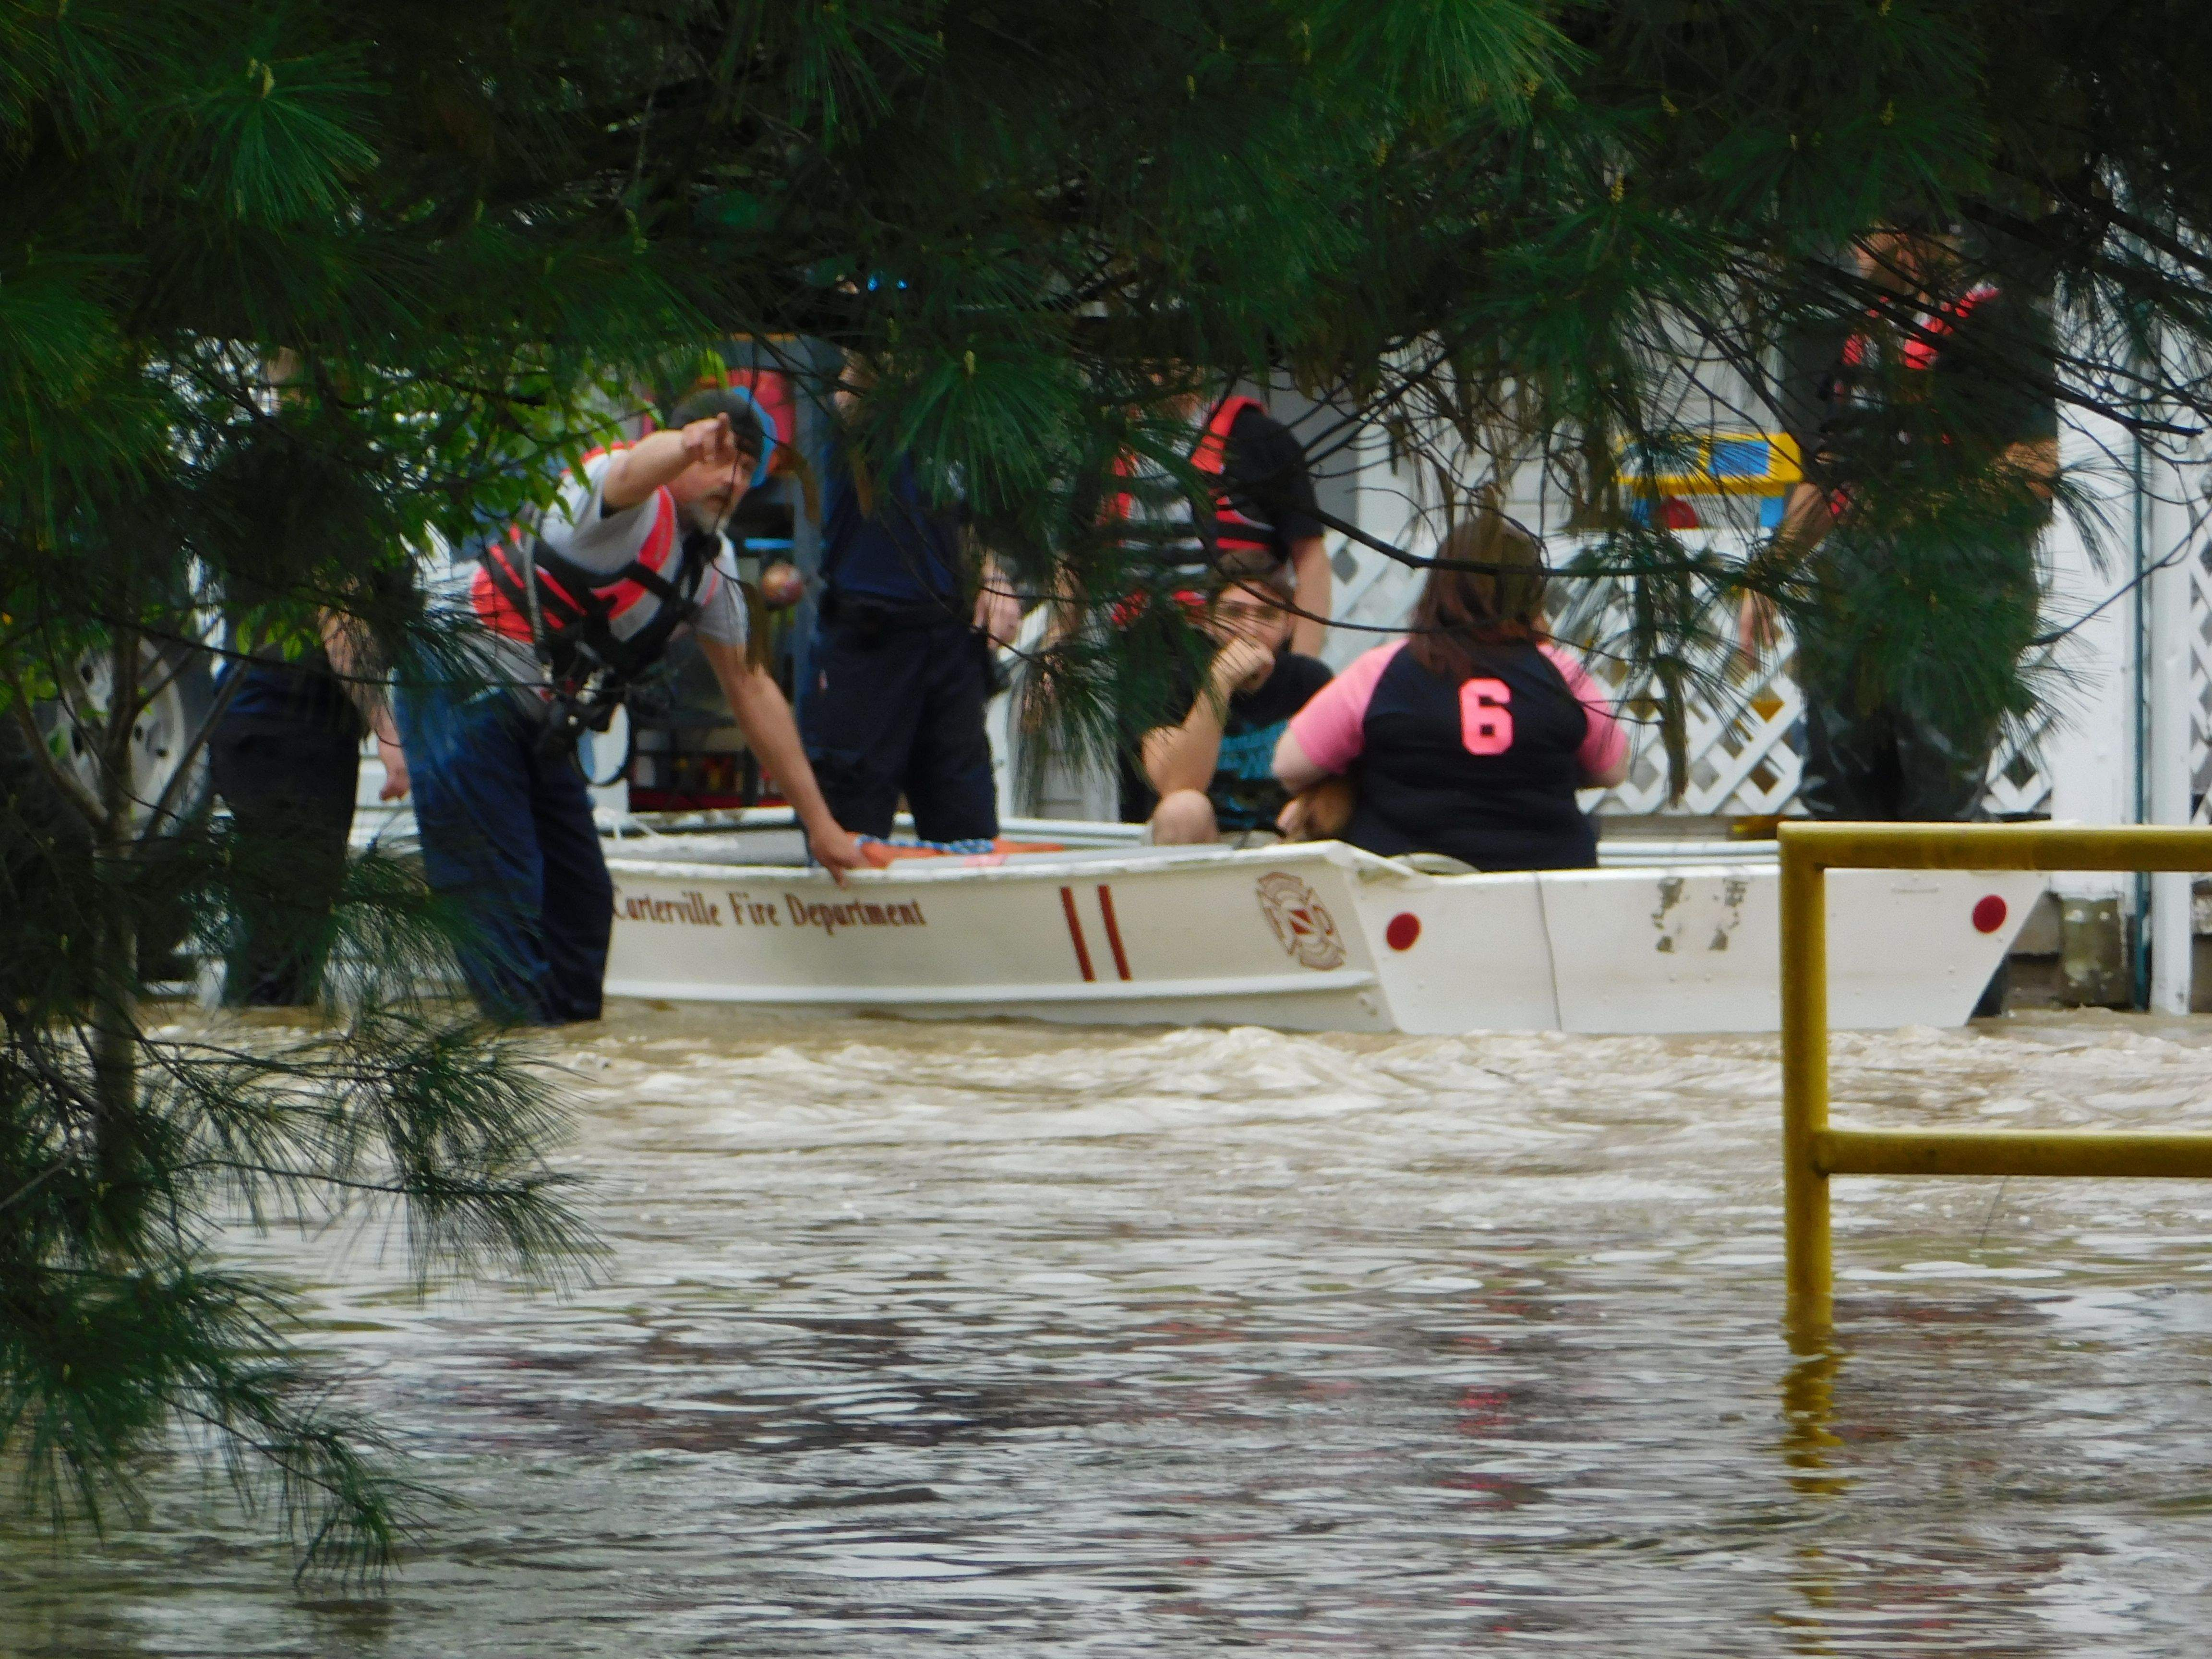 Carterville Fire Chief Ron Rains had no hesitation in answering a call for help from Johnston City on Saturday.  Rains brought the city's rescue boat and some extra hands to help Johnston City's first responders in evacuating several residents who were trapped in their homes by rapidly rising floodwaters.